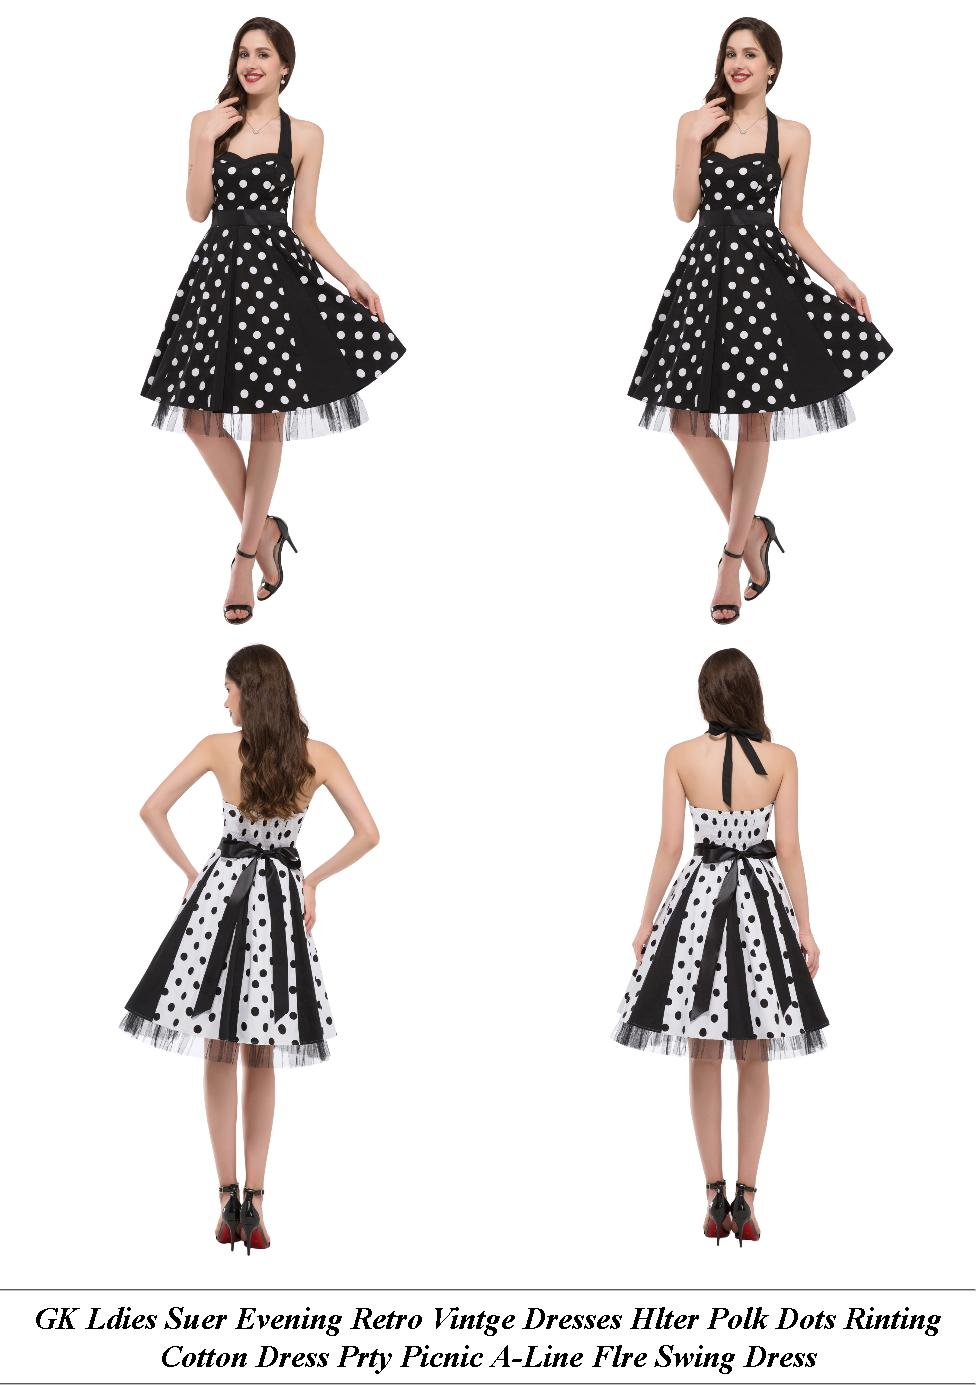 Homecoming Dresses - Trainers Sale Uk - Ross Dress For Less - Cheap Clothes Online Uk